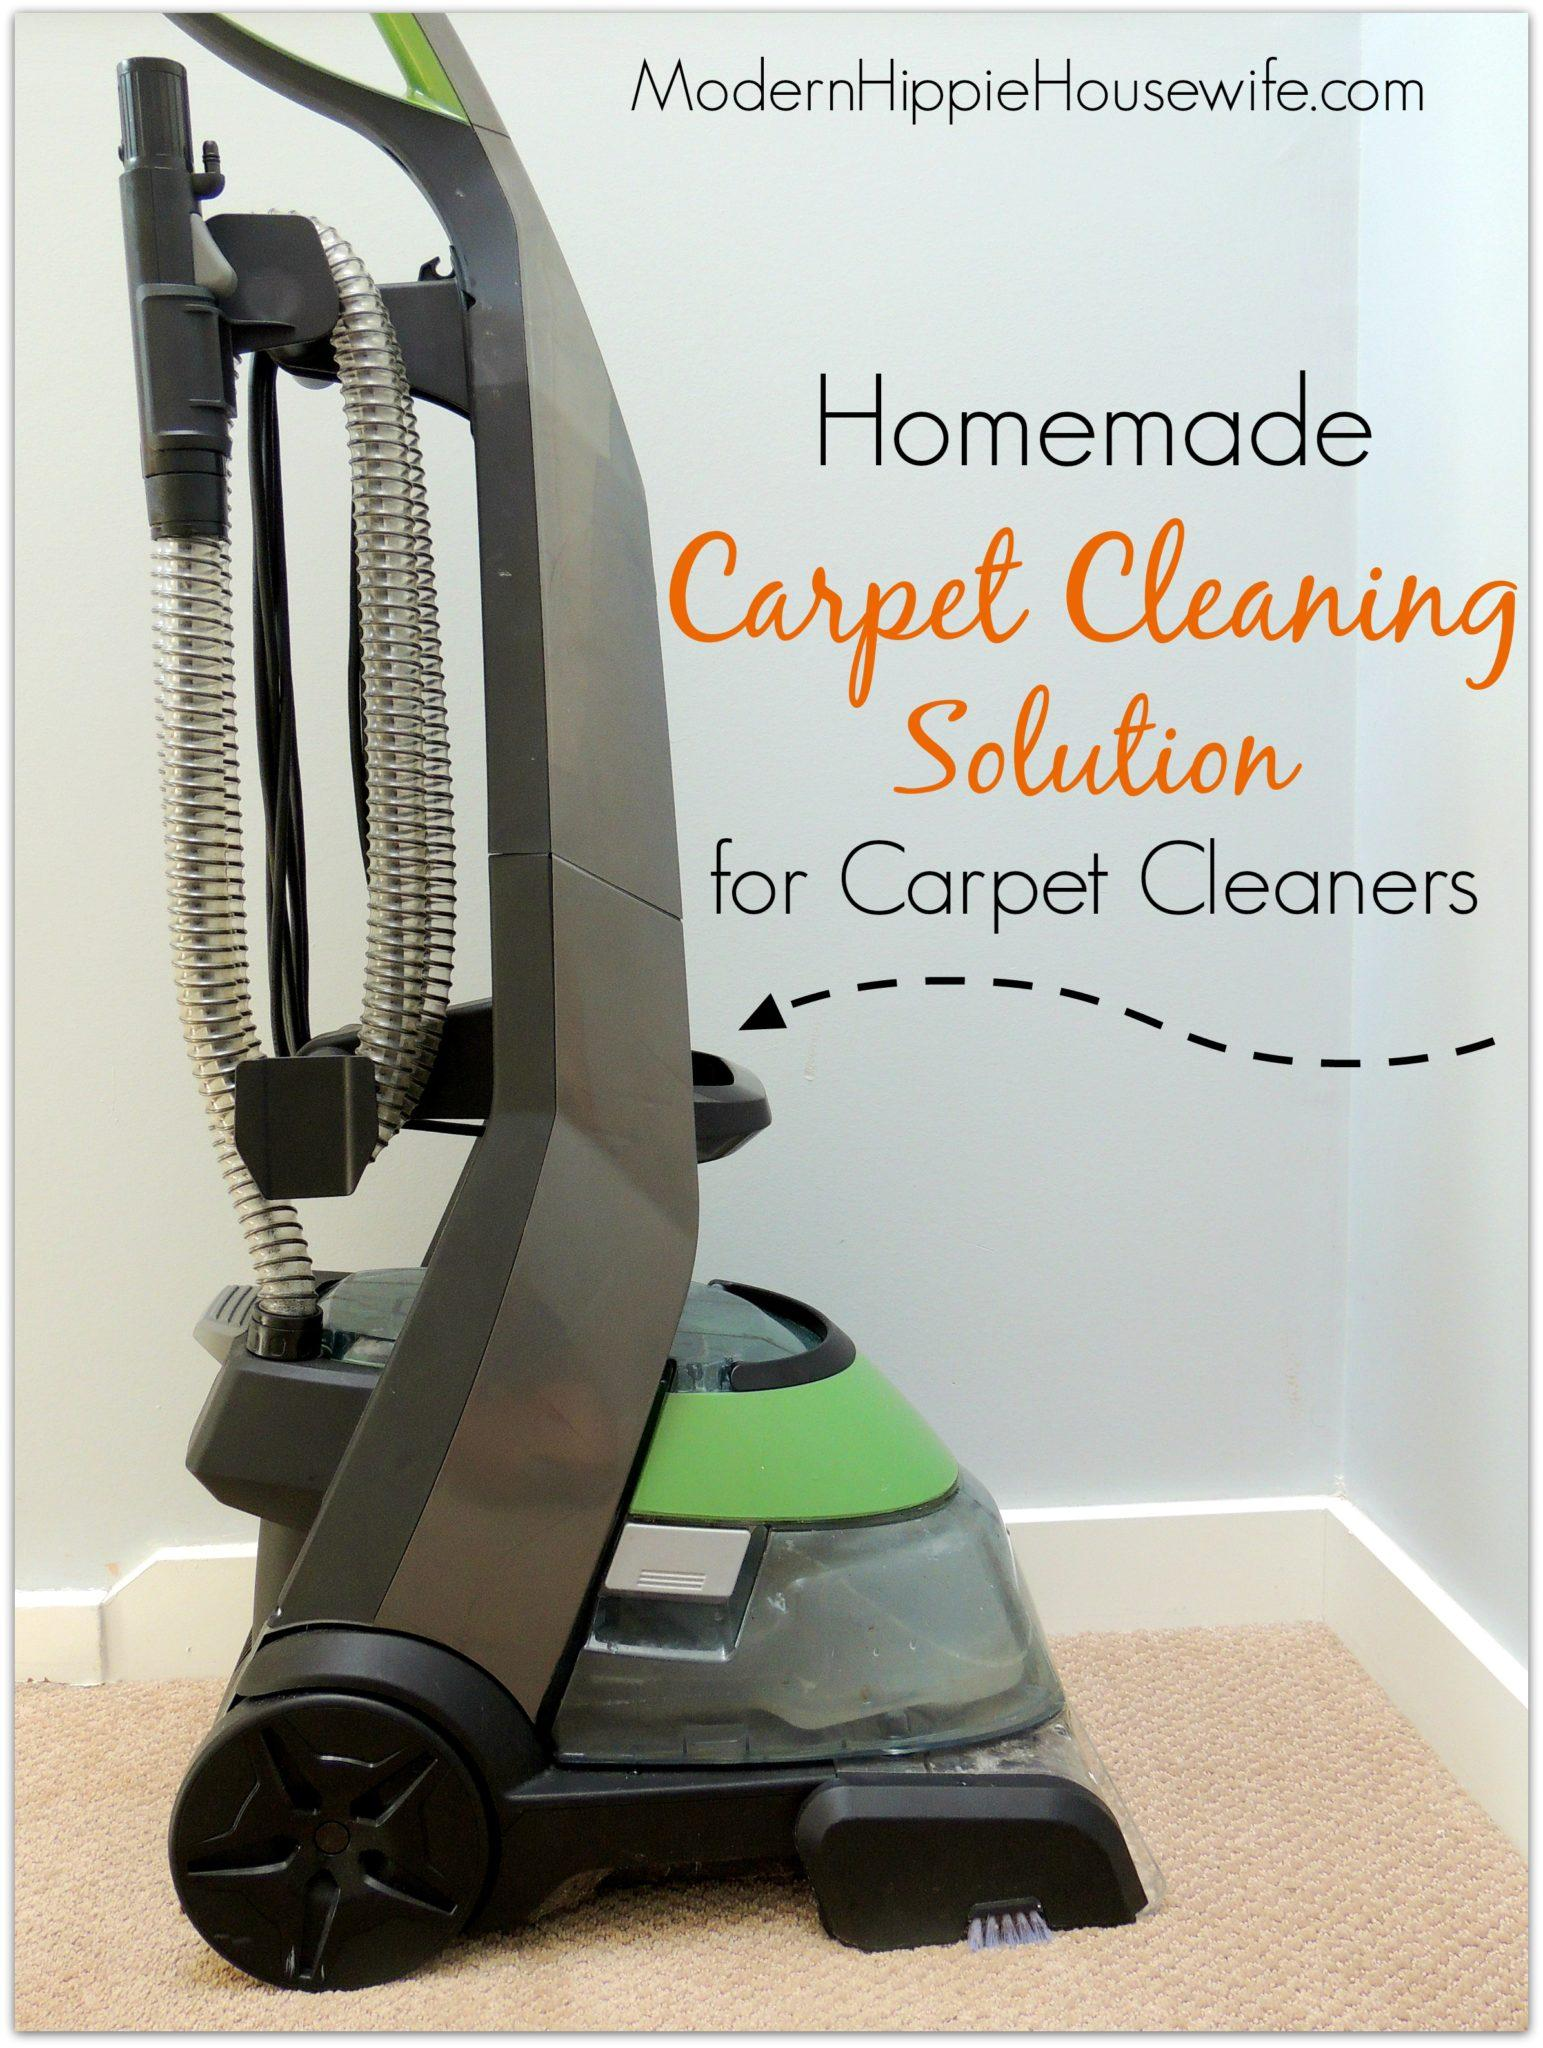 Homemade Carpet Cleaning Solution for